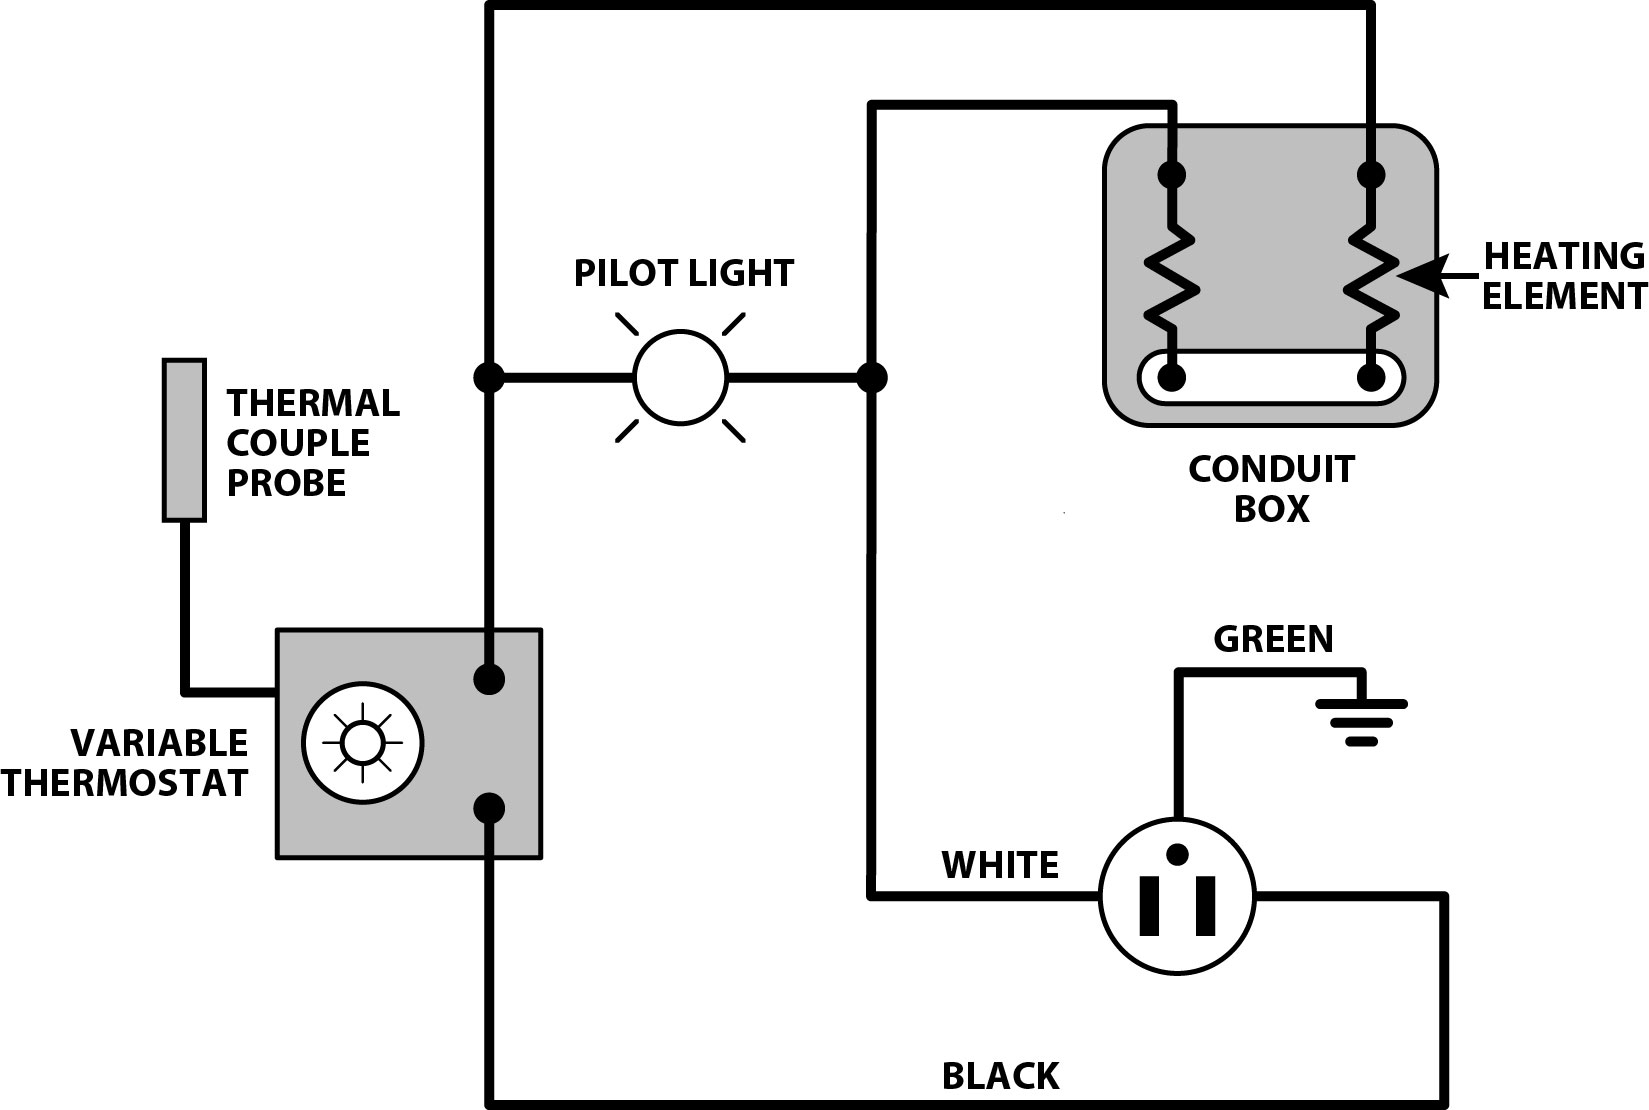 hight resolution of wiring 240v oven wiring diagram source 480v 3 phase wiring diagram 240v oven wiring diagram